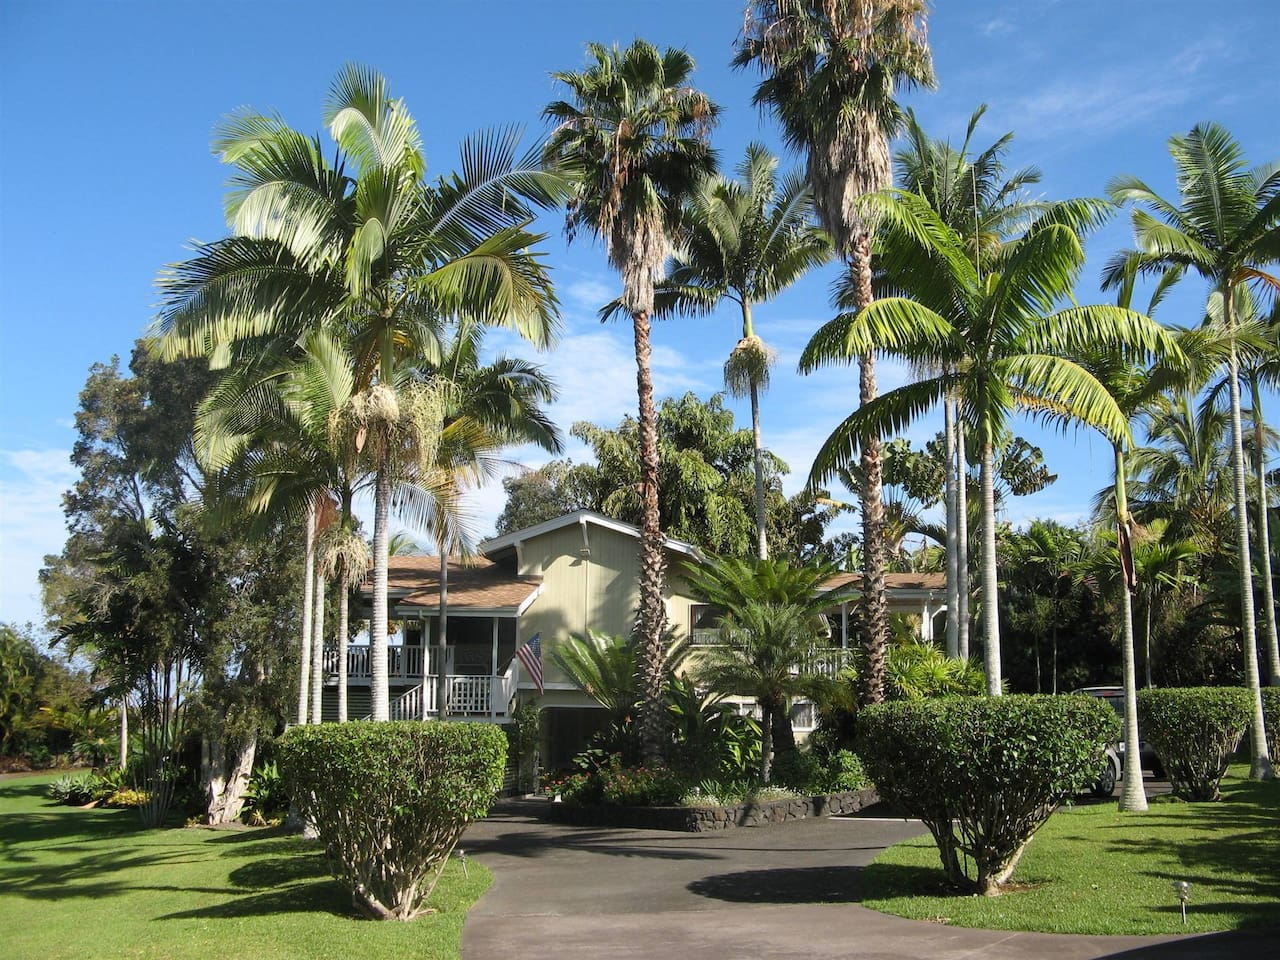 This 5 bedroom cedar mansion has 5 bedrooms, 5 bathrooms and 3 lanais.   This photo shows the circular driveway entrance from the parking area and begins the two acres of lush tropical gardens and well manicured lawn.